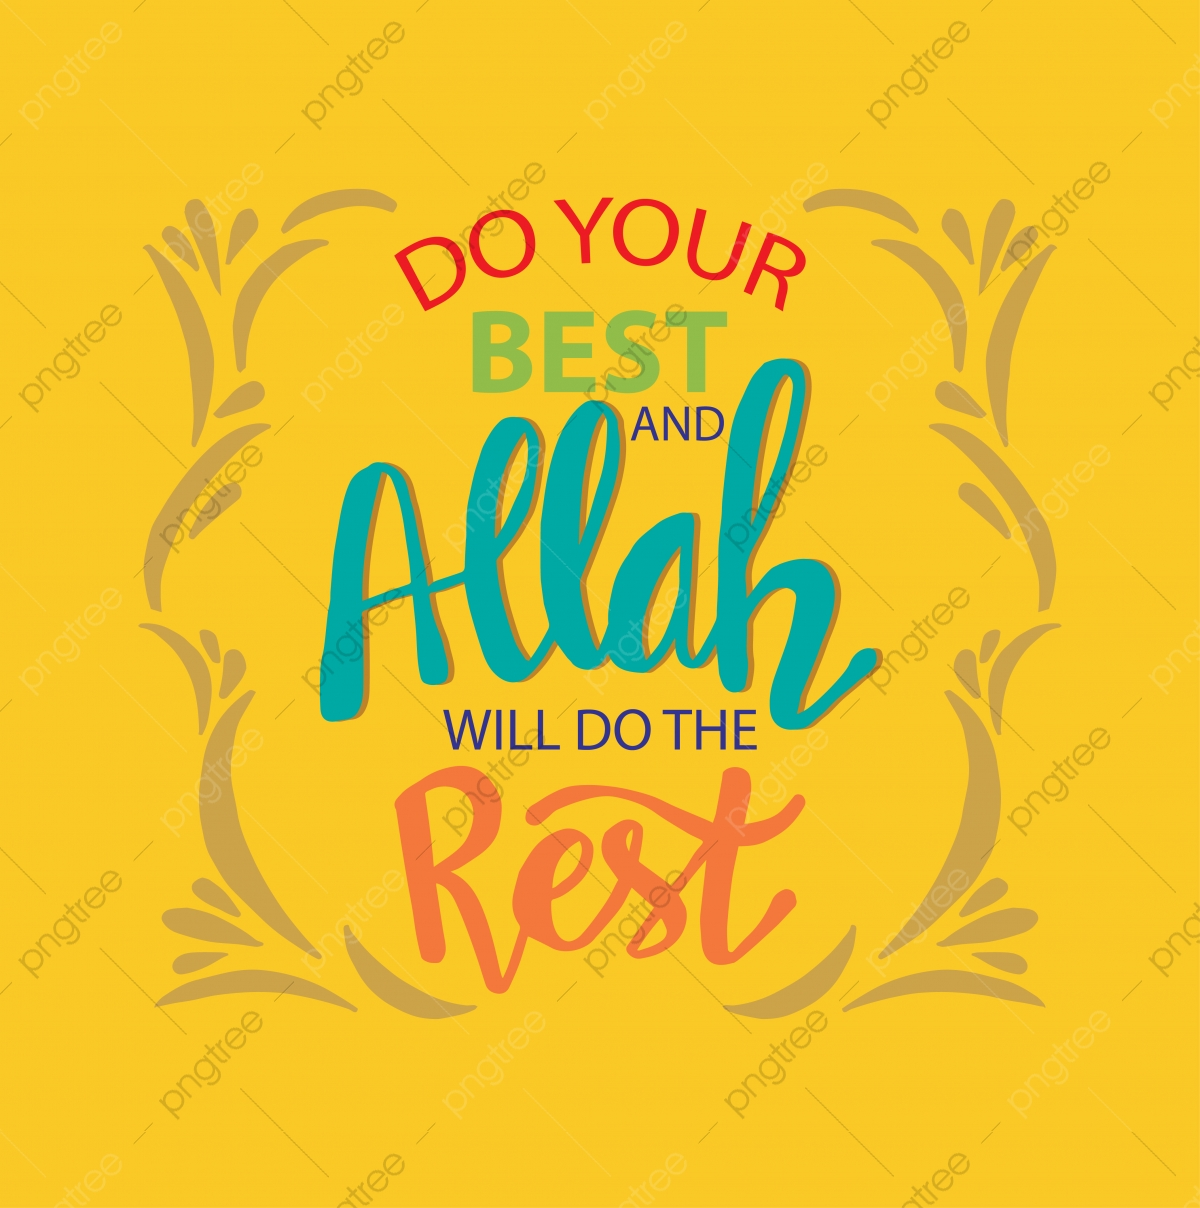 Do Your Best And Allah Will Do This Rest Ramadan Quotes Allah Allah Quote Arabic Png And Vector With Transparent Background For Free Download